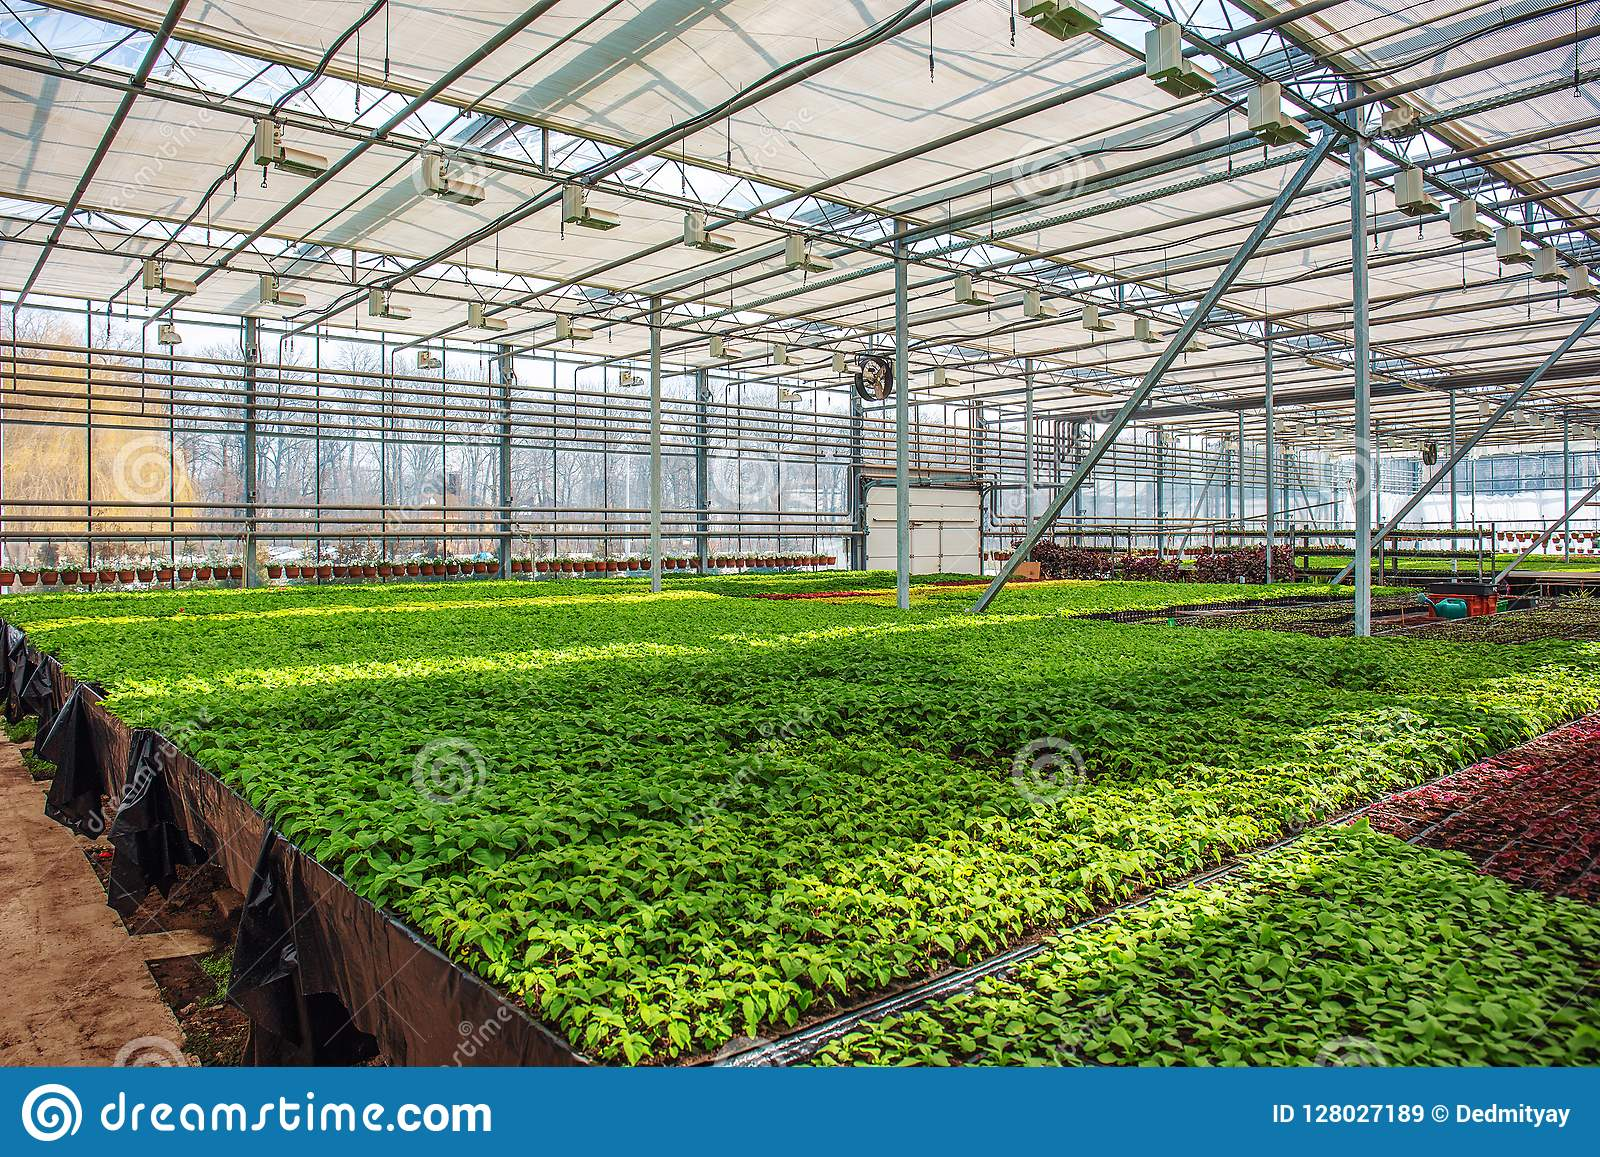 Organic Ornamental Plants And Flowers In Modern Hydroponic Greenhouse Or Hothouse With Climate Control System Stock Image